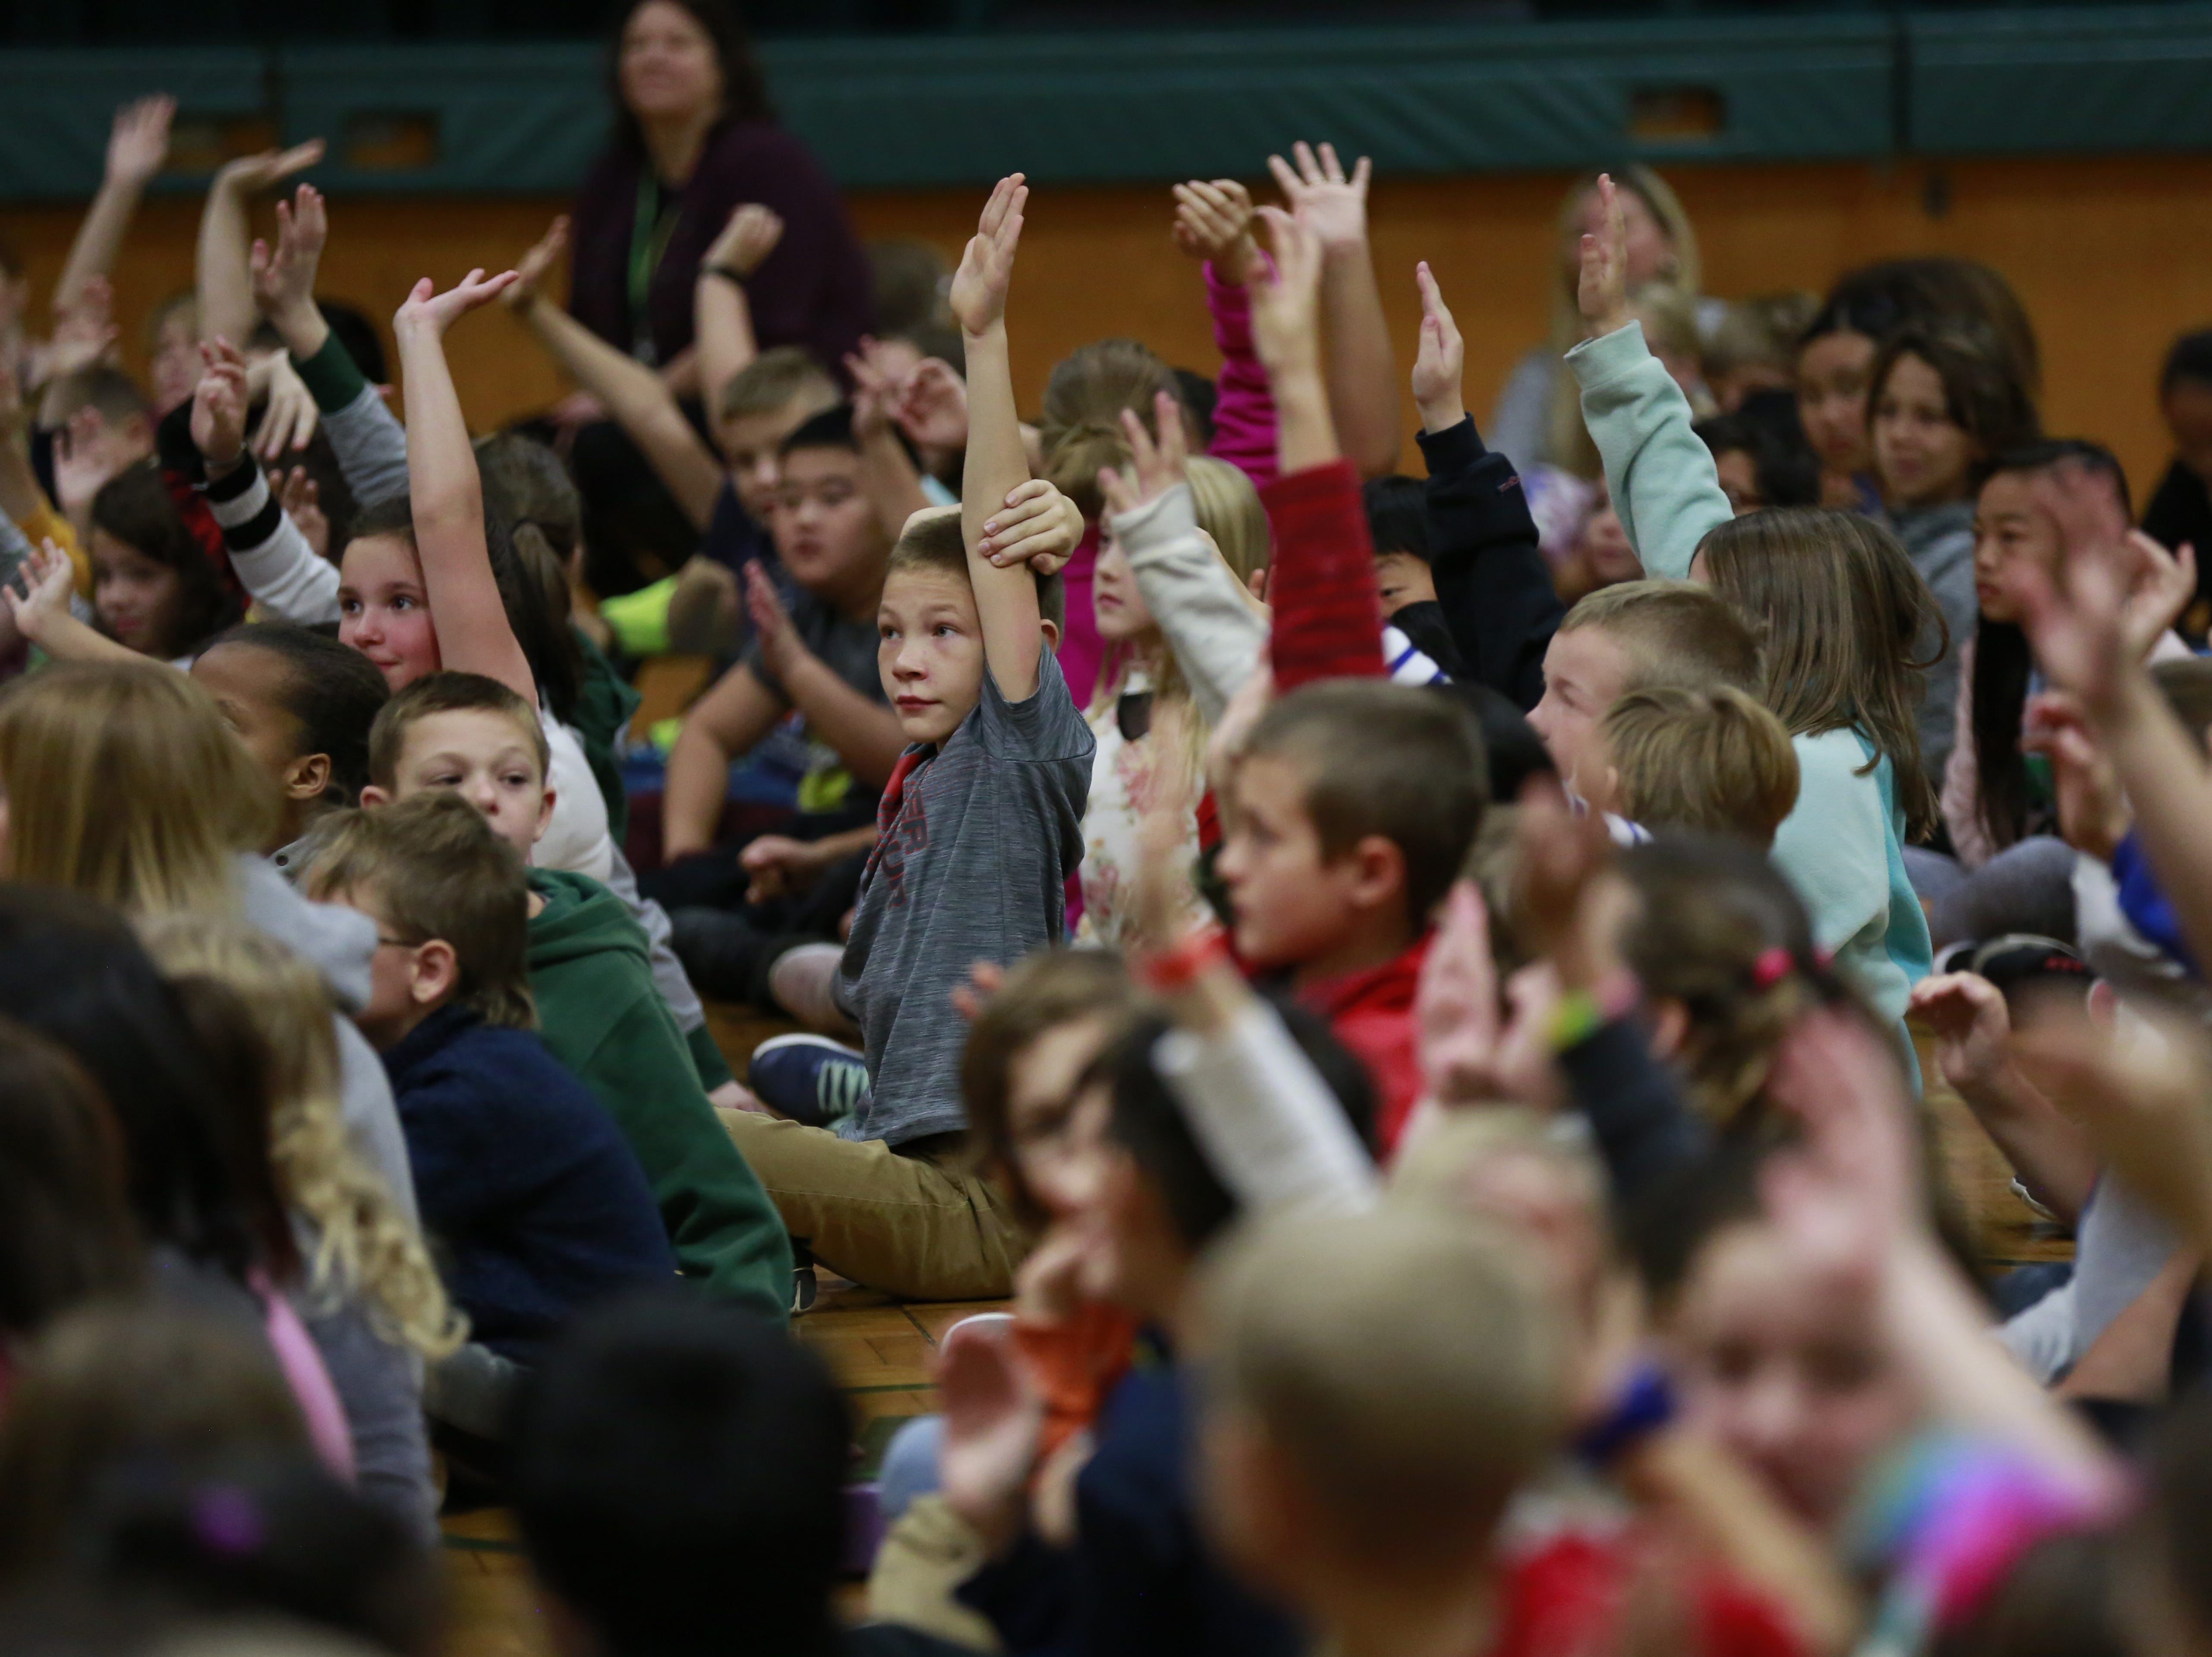 Students raise their hands to be called by former MSU basketball player Anthony Ianni on Monday, Oct. 15, 2018, during the Anti-Bullying Relentless Tour to Visit Wisconsin at Weston Elementary School in Weston, Wis.